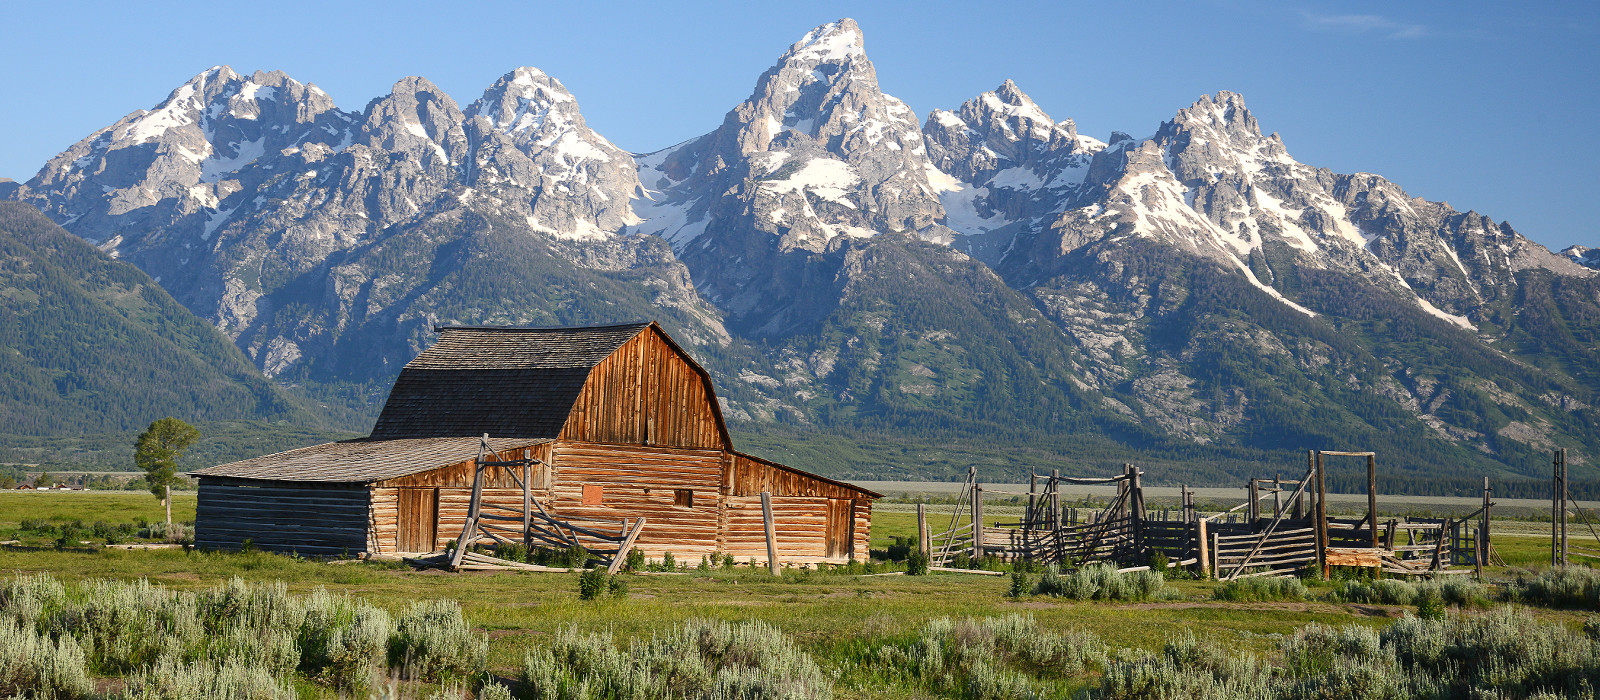 Reiseziel Grand Teton Nationalpark USA